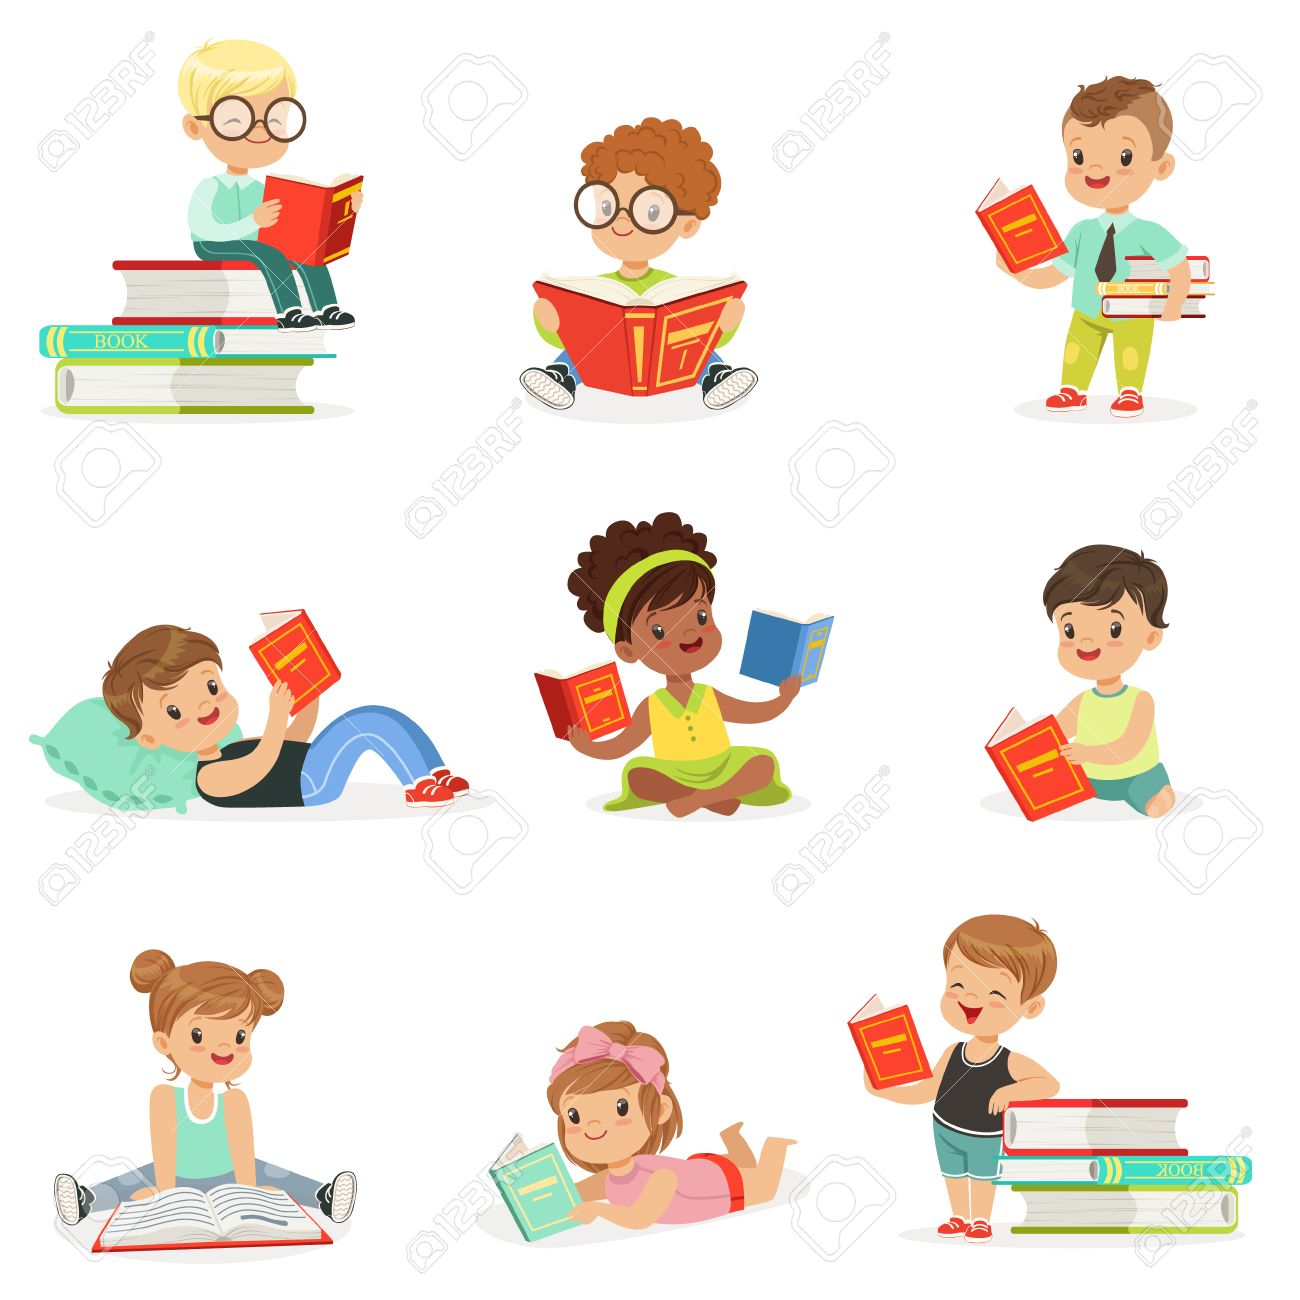 Kids Reading Books And Enjoying Literature Collection Of Cute